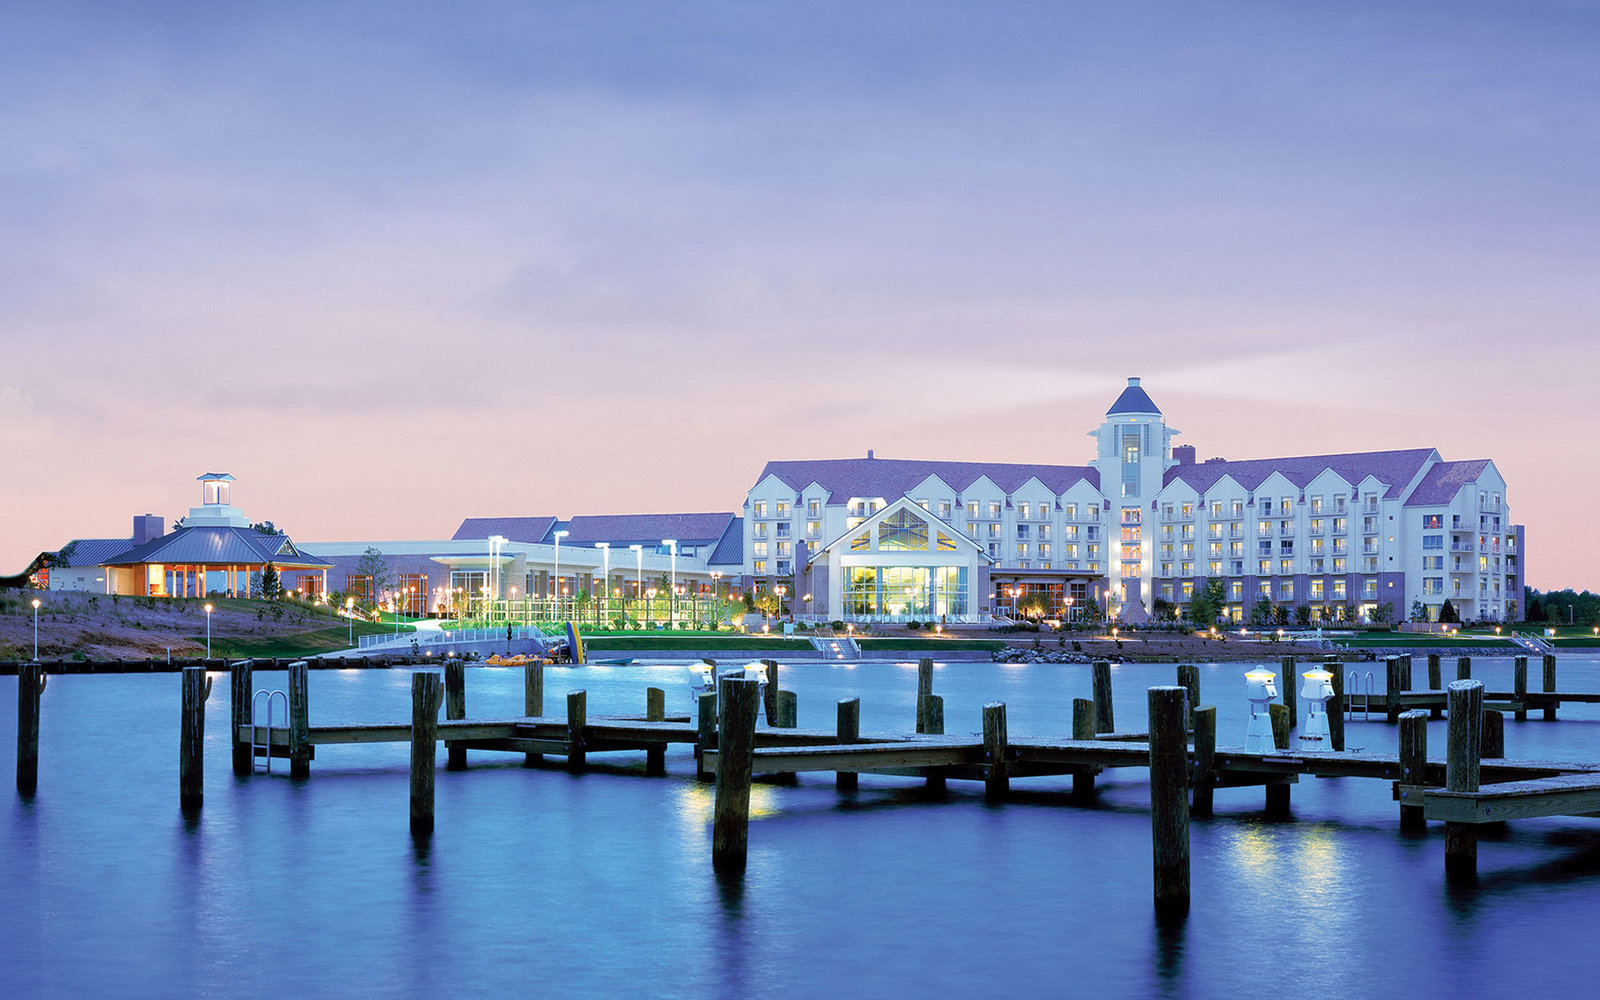 Maryland: Hyatt Regency Chesapeake Bay Golf Resort, Spa & Marina